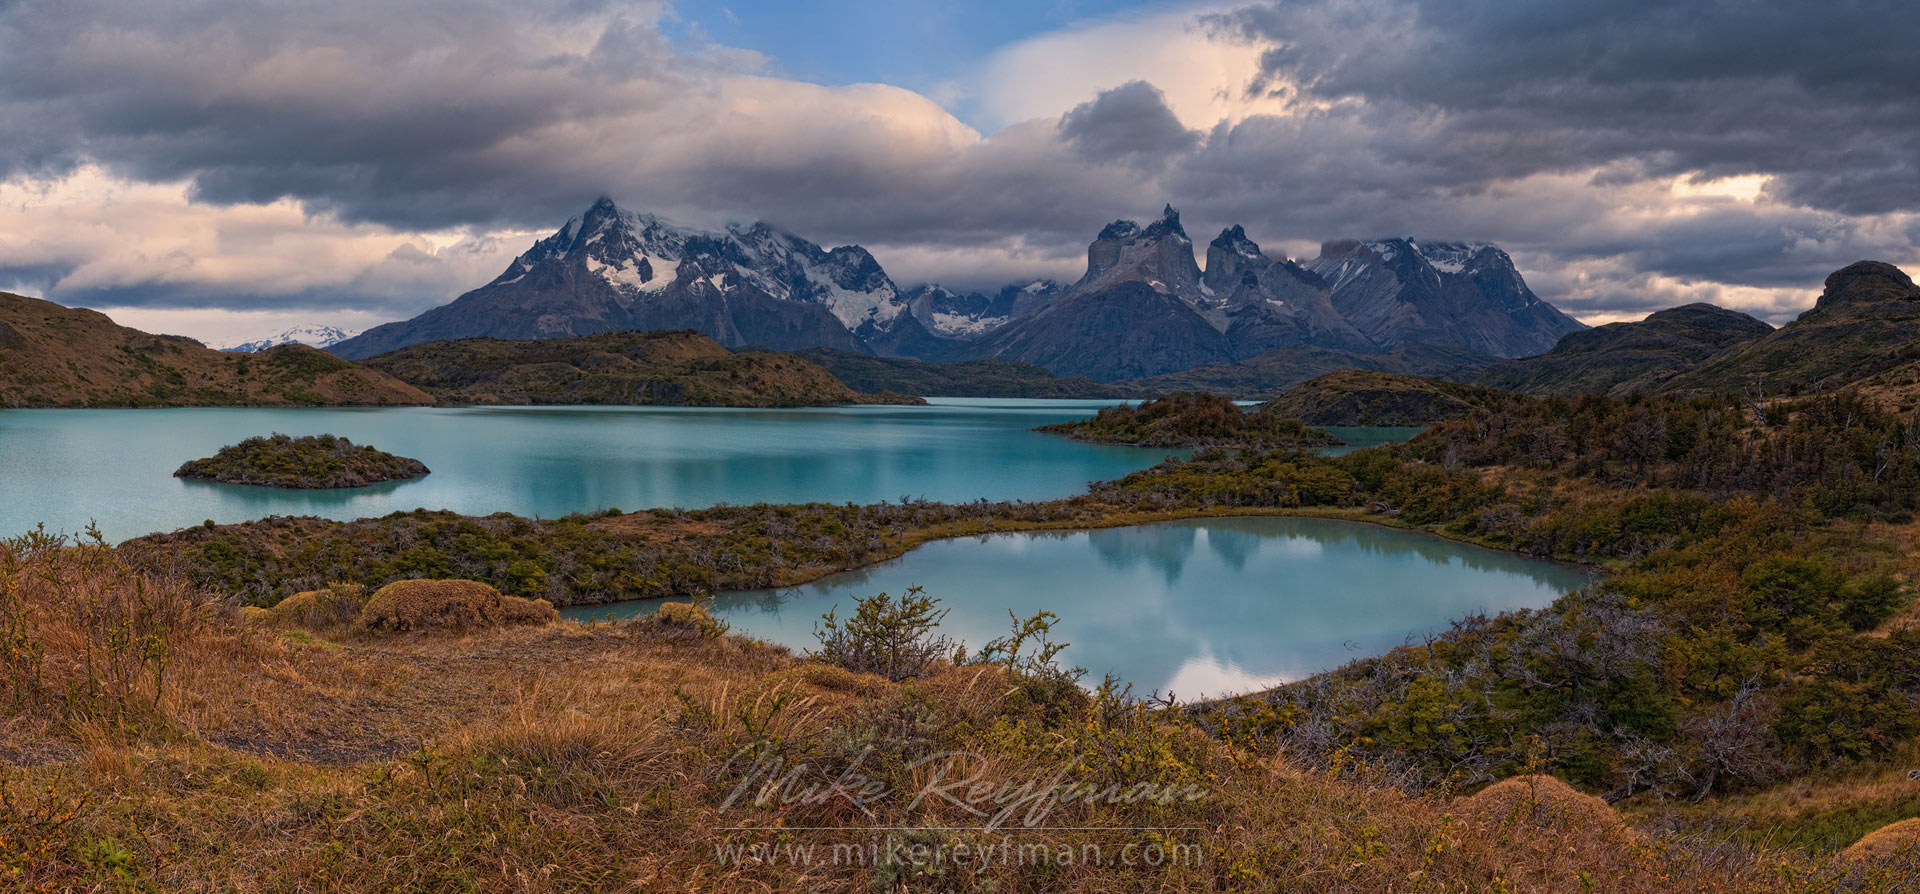 Lago Pehoe, Cerro Paine Grande and Cuernos del Paine from Explora Loge. Torres del Paine National Park, Ultima Esperanza Province, Magallanes and Antartica Chilena Region XII, Patagonia, Chile. - Torres-Del-Paine-National-Park-Patagonia-Chile - Mike Reyfman Photography